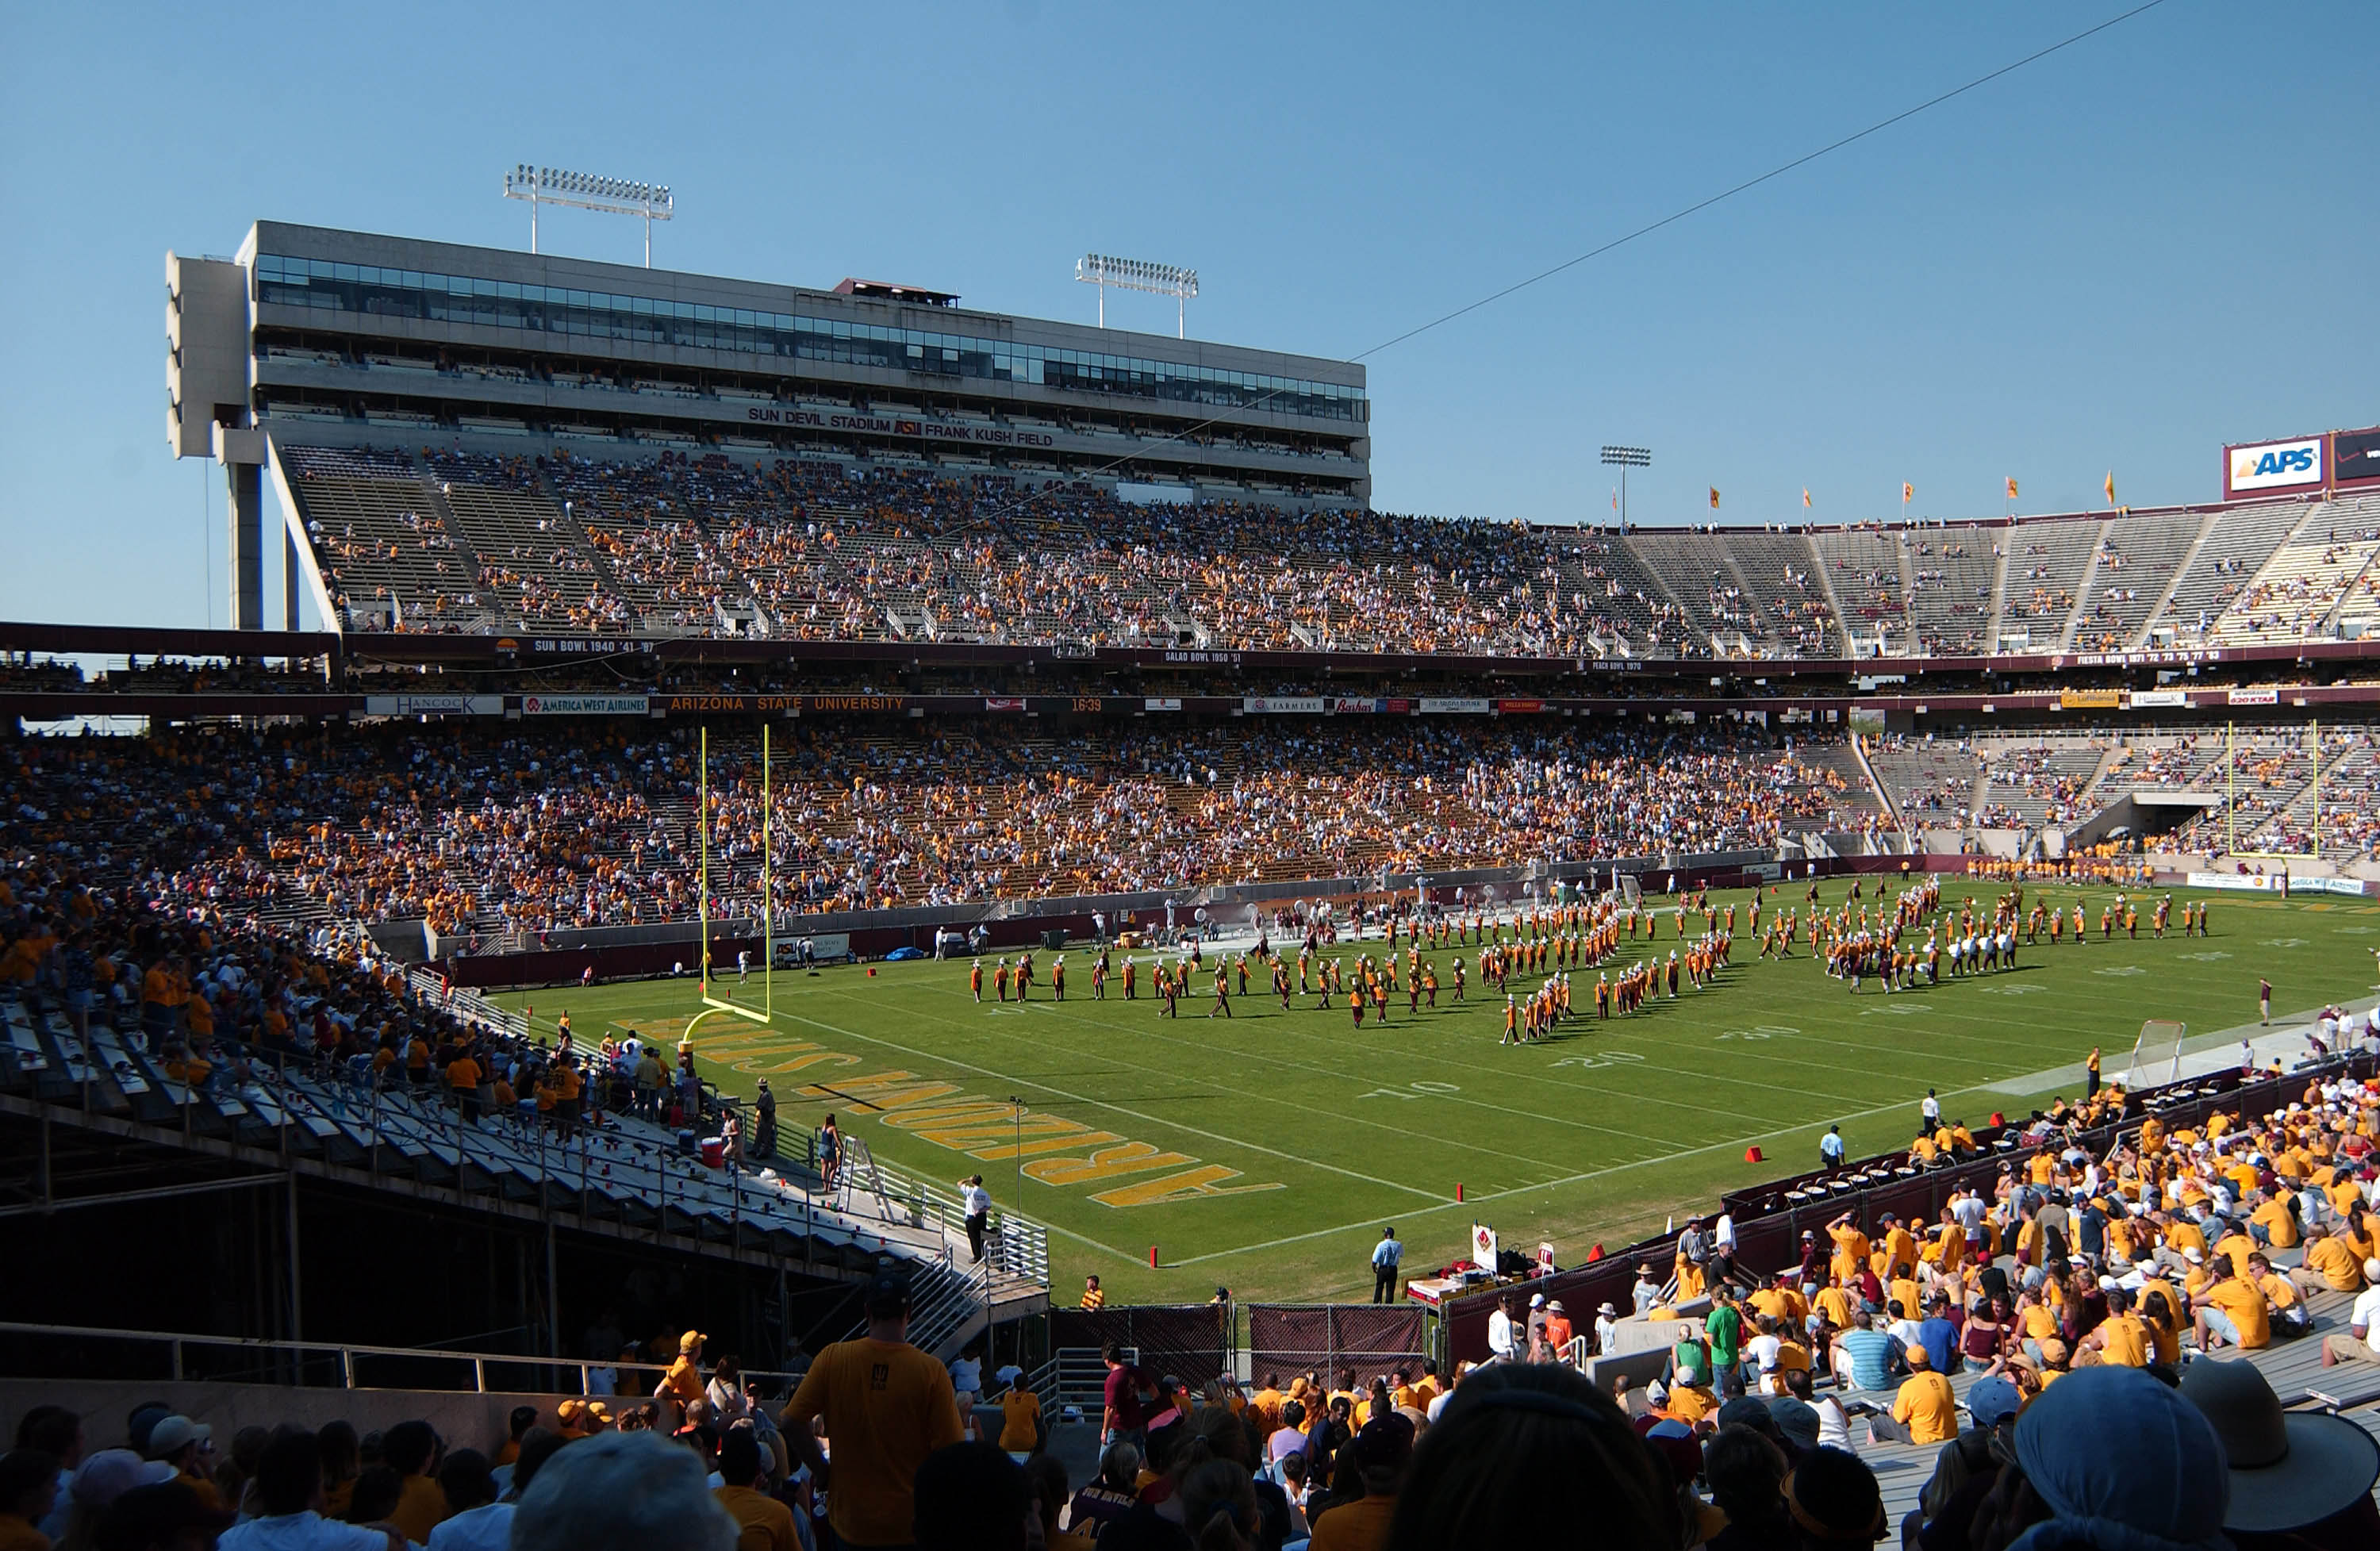 Opened in 1958, the stadium was originally the home of the Arizona State University Sun Devils; it also hosted the Arizona Cardinals from 1988 to 2005. Although the Cardinals left in 2006 for a new stadium across town, the Sun Devils remain.